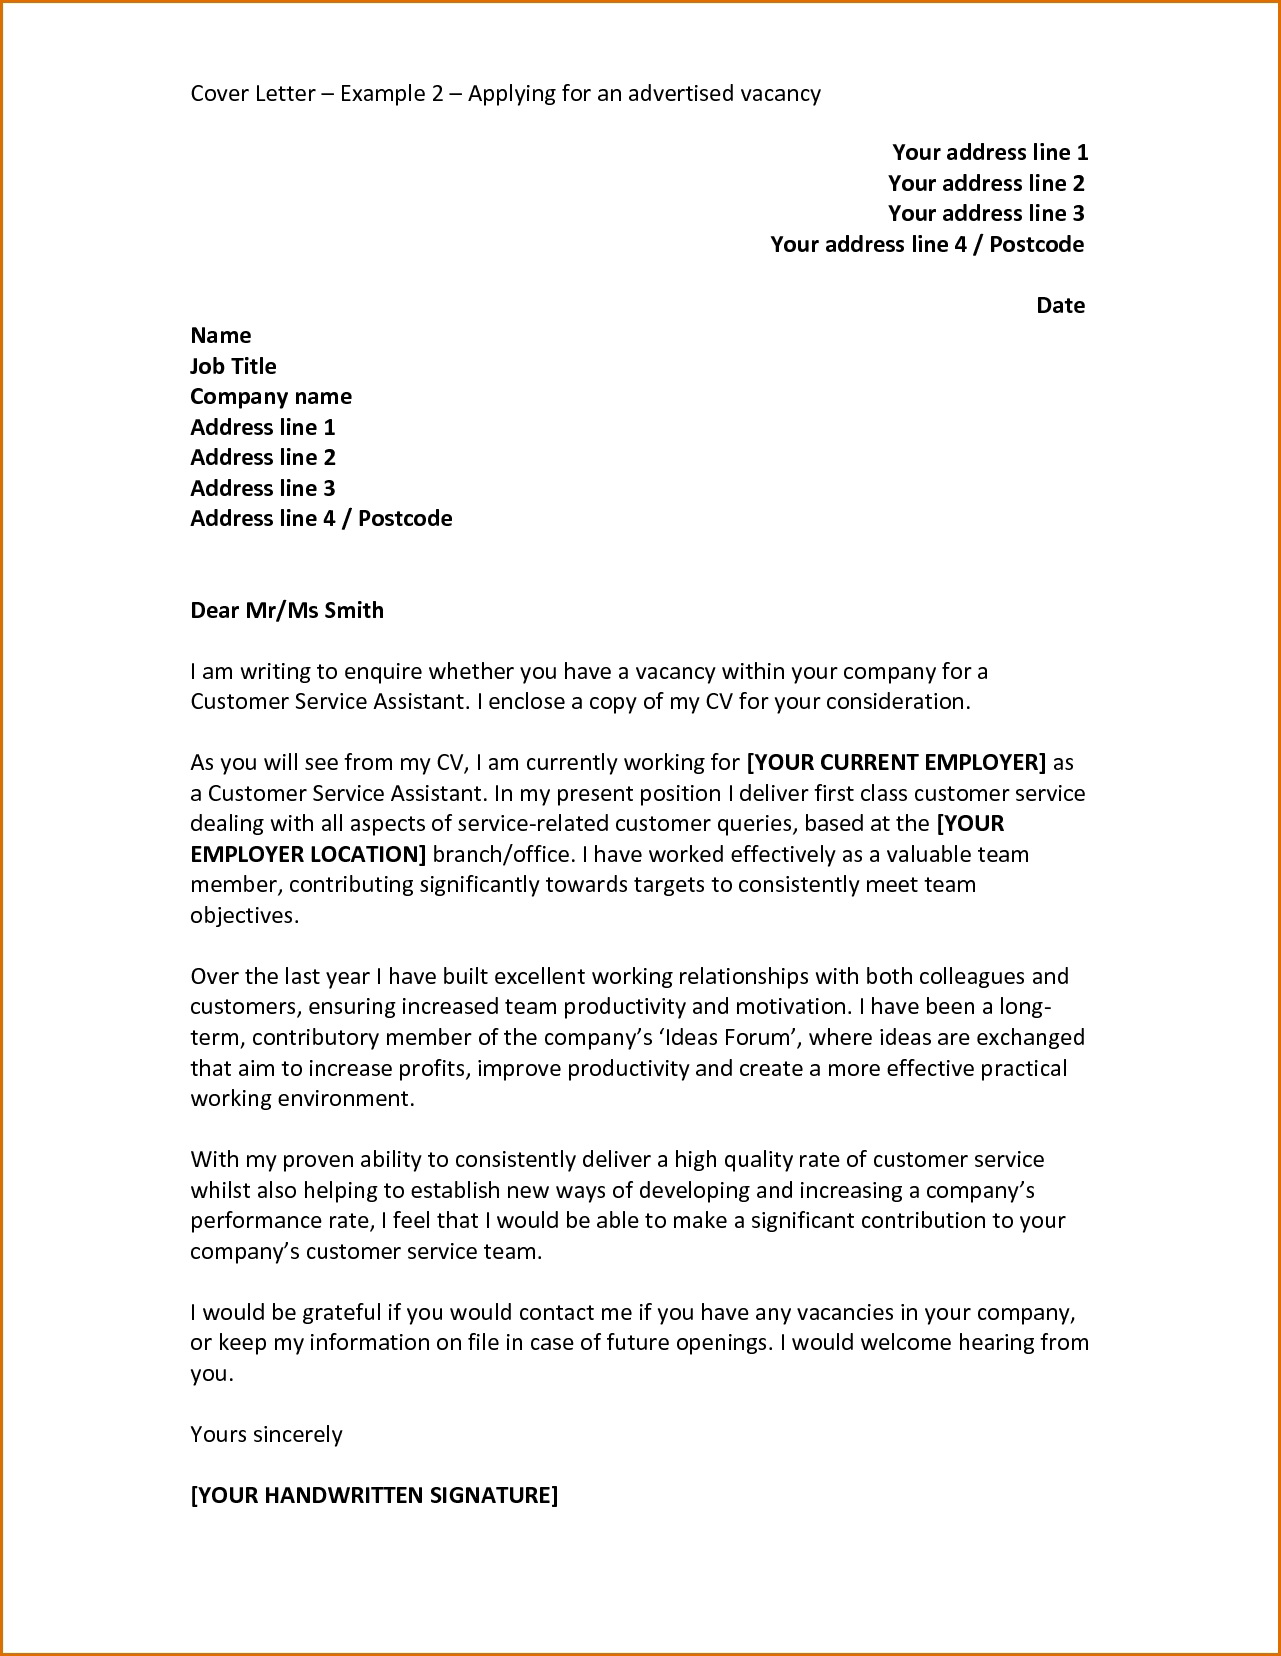 Application Letter For A Job Vacancy Samples Sample Cover Letter